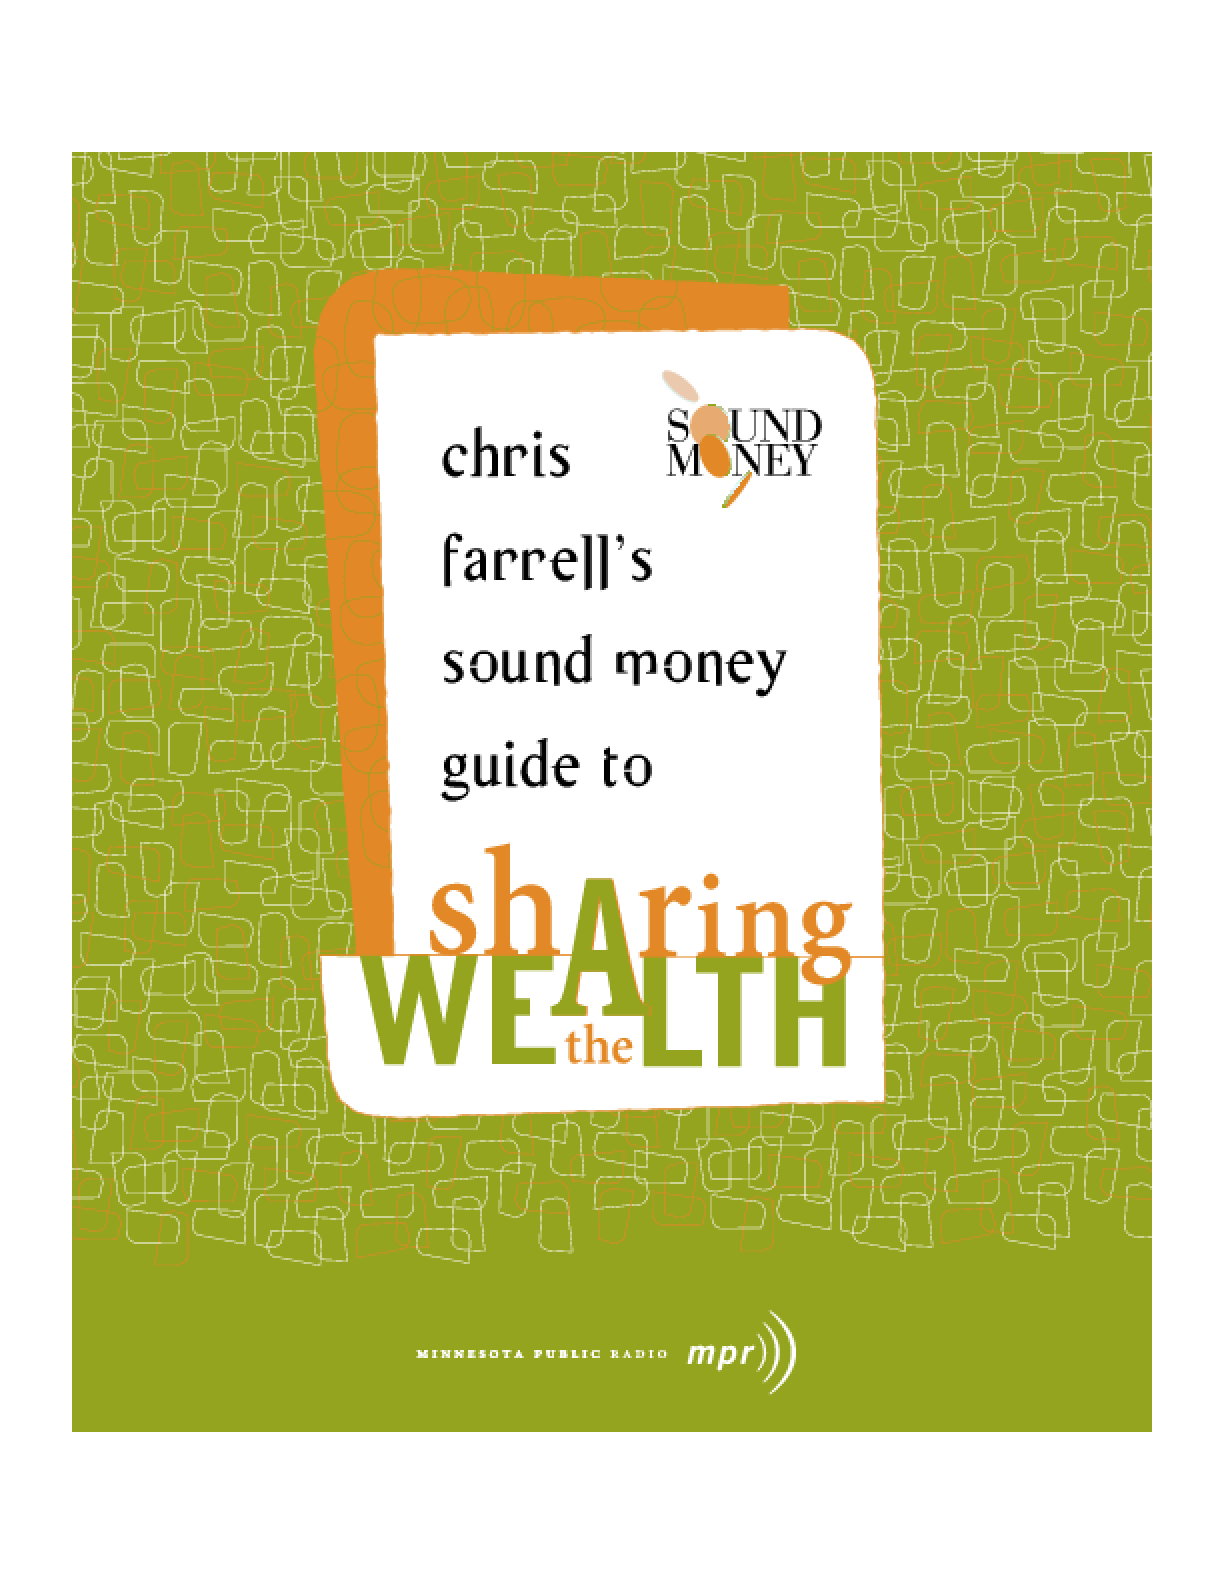 Chris Farrell's Sound Money Guide to Sharing the Wealth